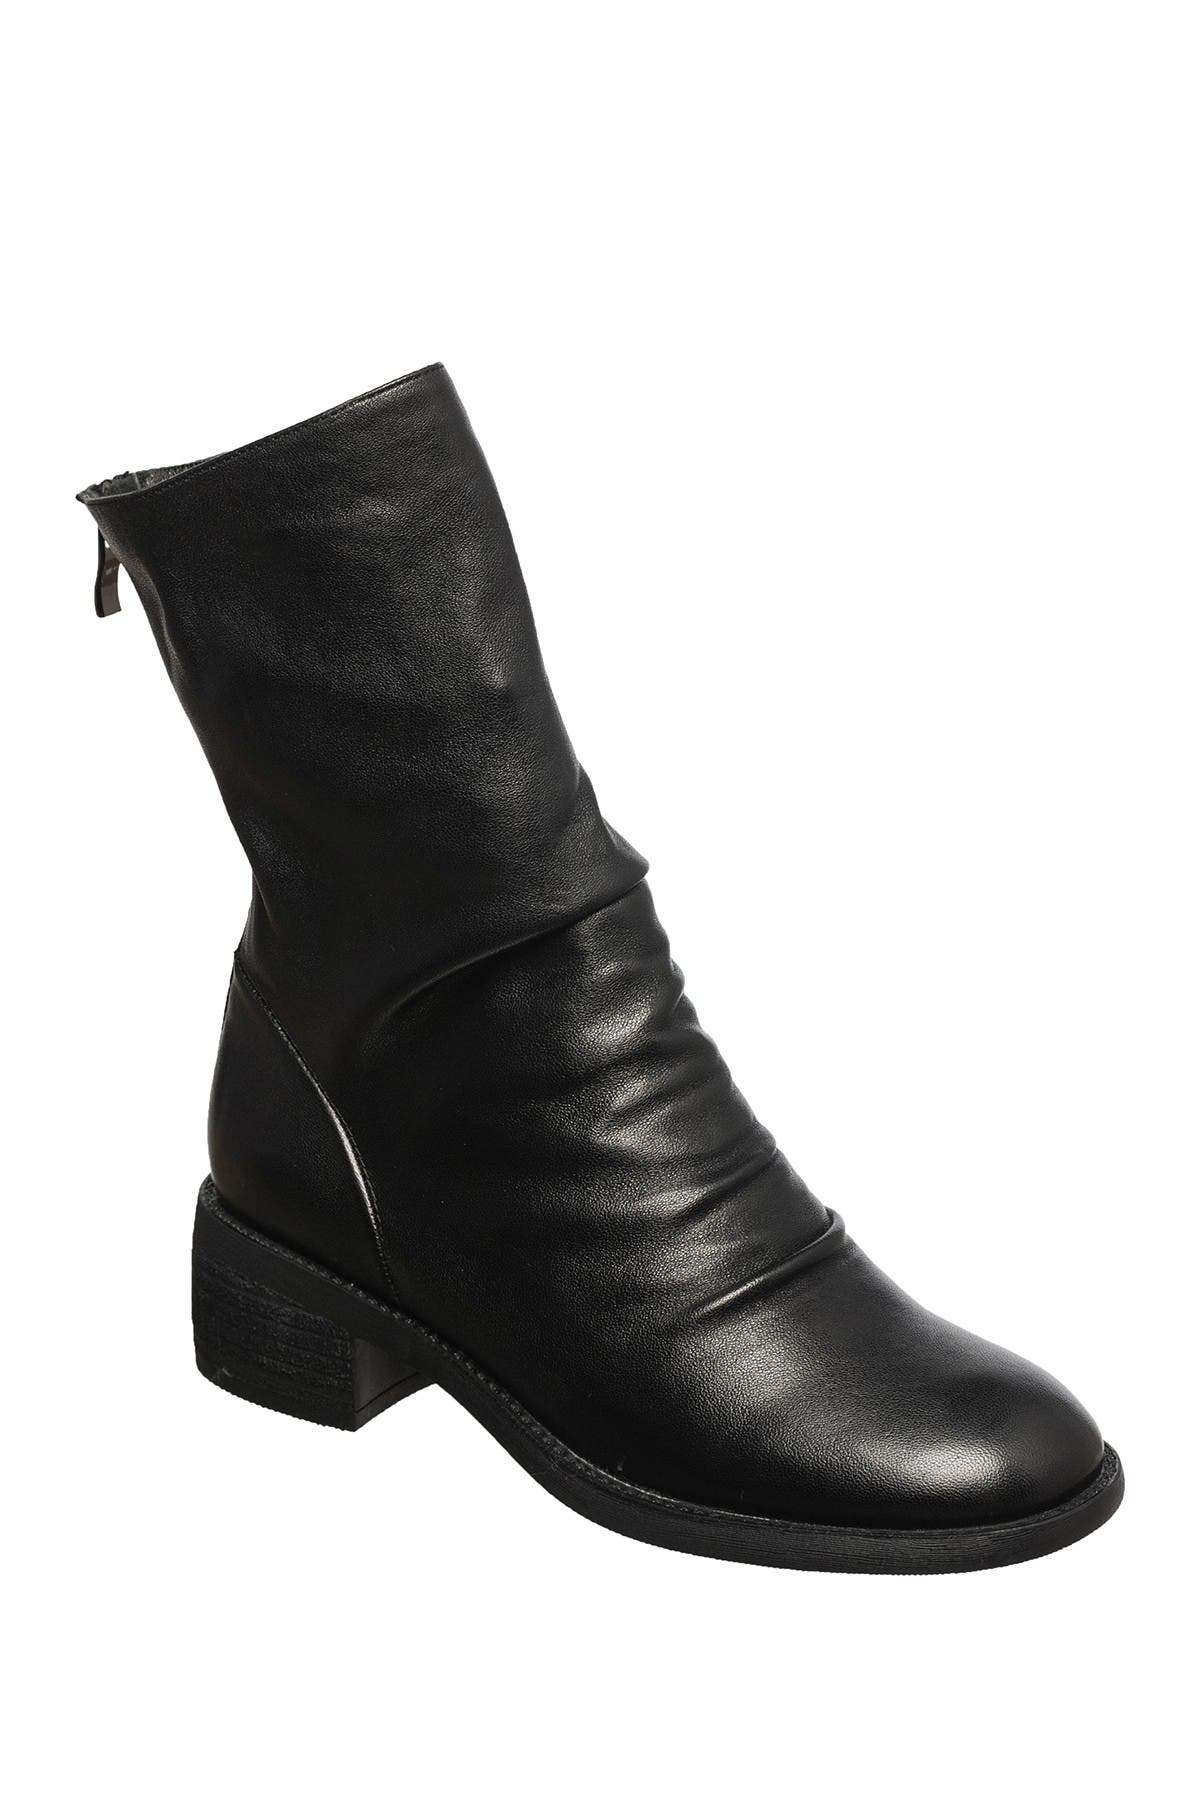 Image of Antelope Ruched Leather Boot